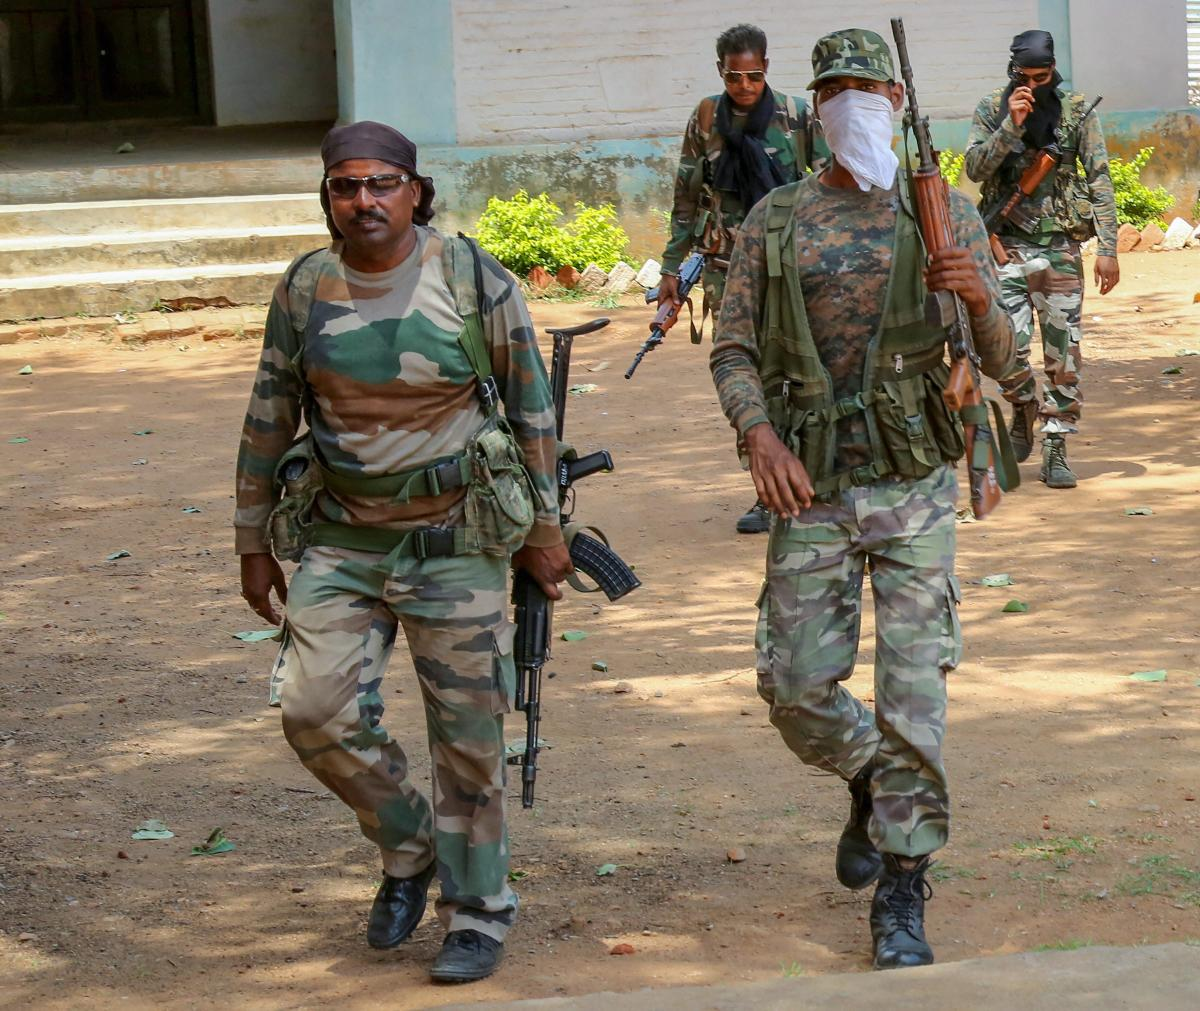 Home Ministry officials said the funds were released as part of a central government scheme under which it reimburses all expenses incurred by the states while carrying out anti-Naxal operations. PTI File Photo